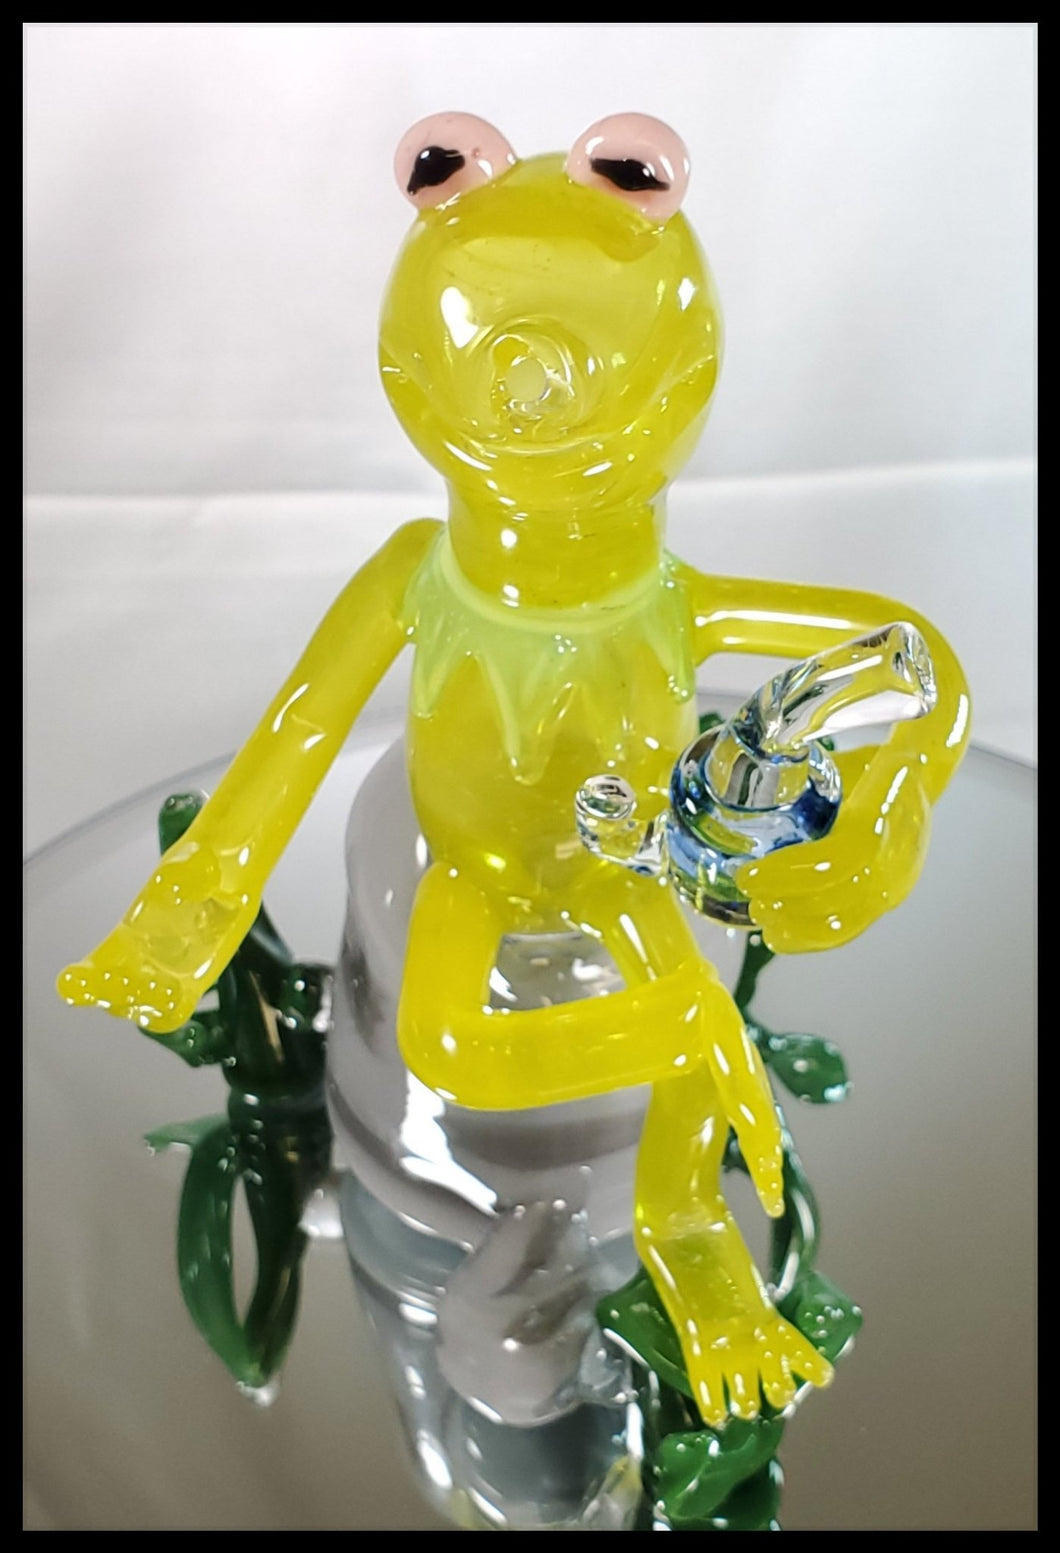 Weapons of Glass Destruction - Kermit Dab Rig - The Bong Czar Smokeshop & Heady Czar Glass Gallery